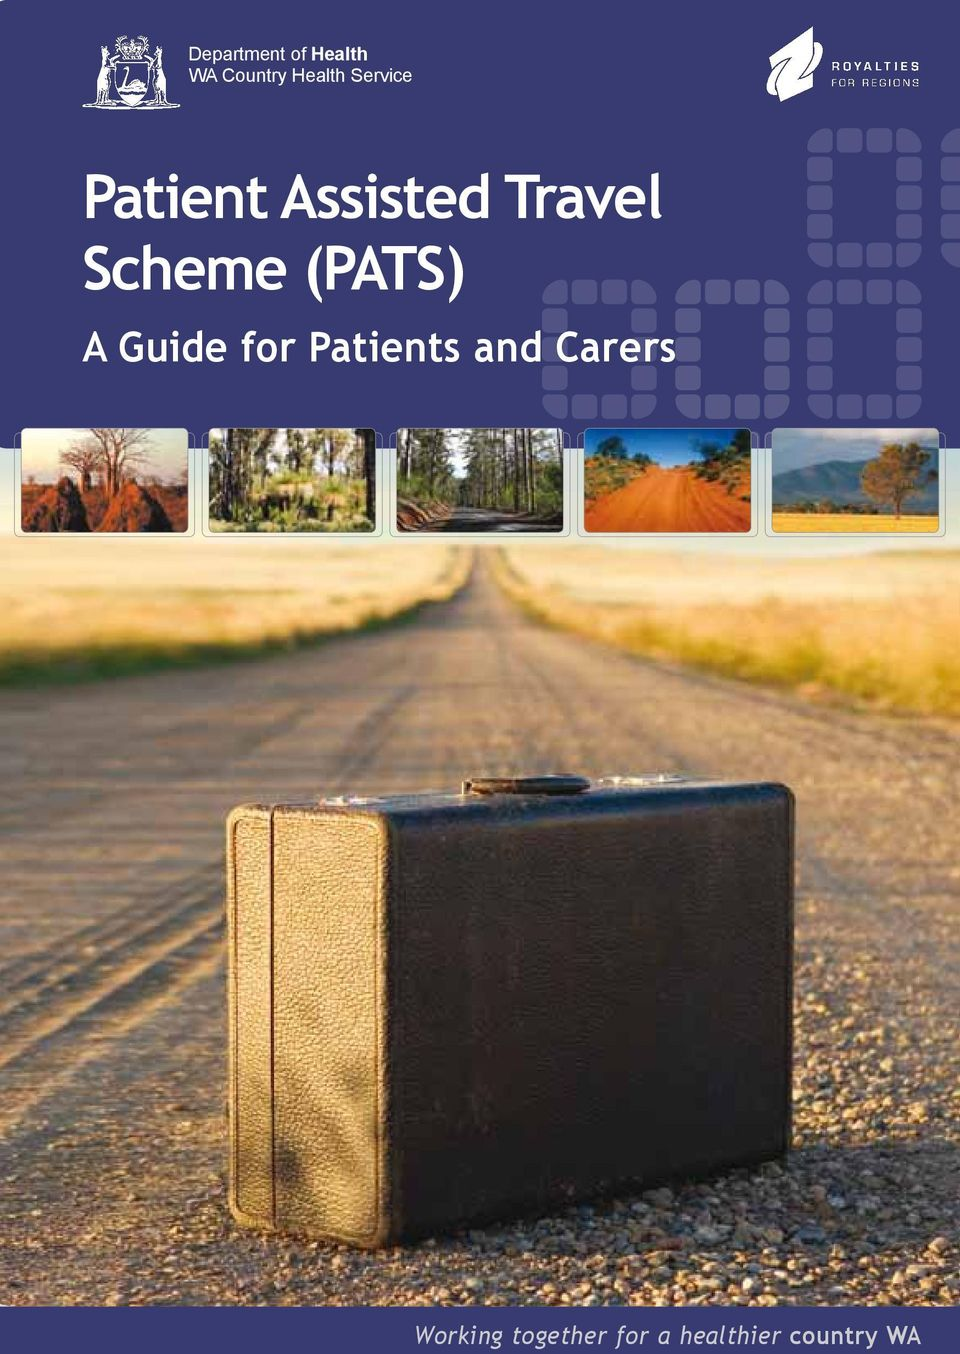 (PATS) A Guide for Patients and Carers